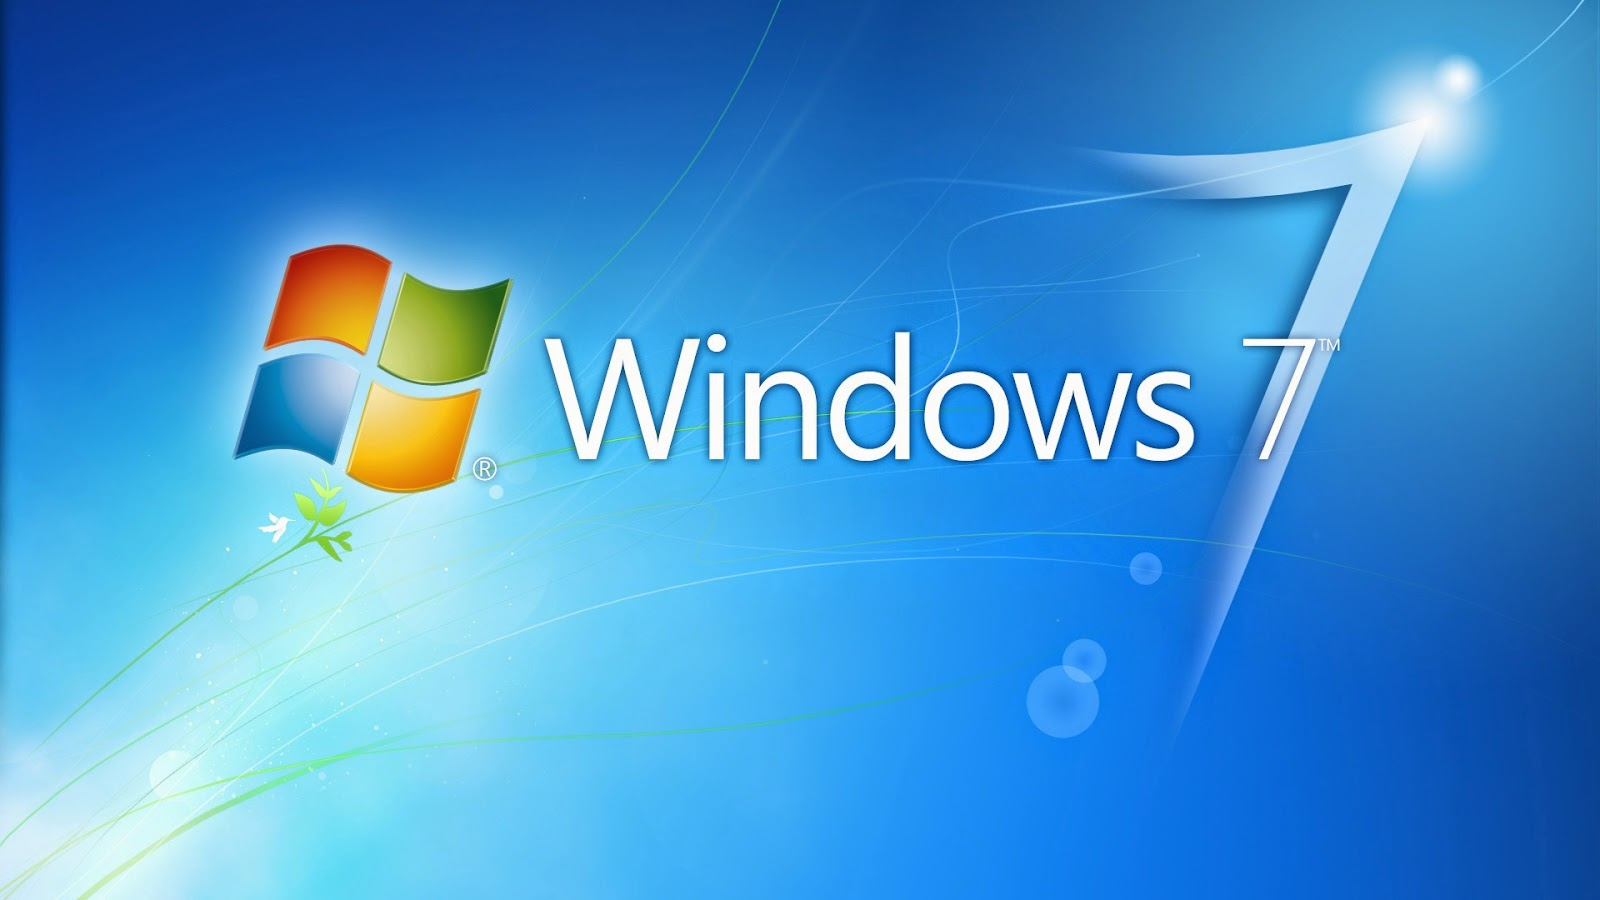 windows 7 dihentikan